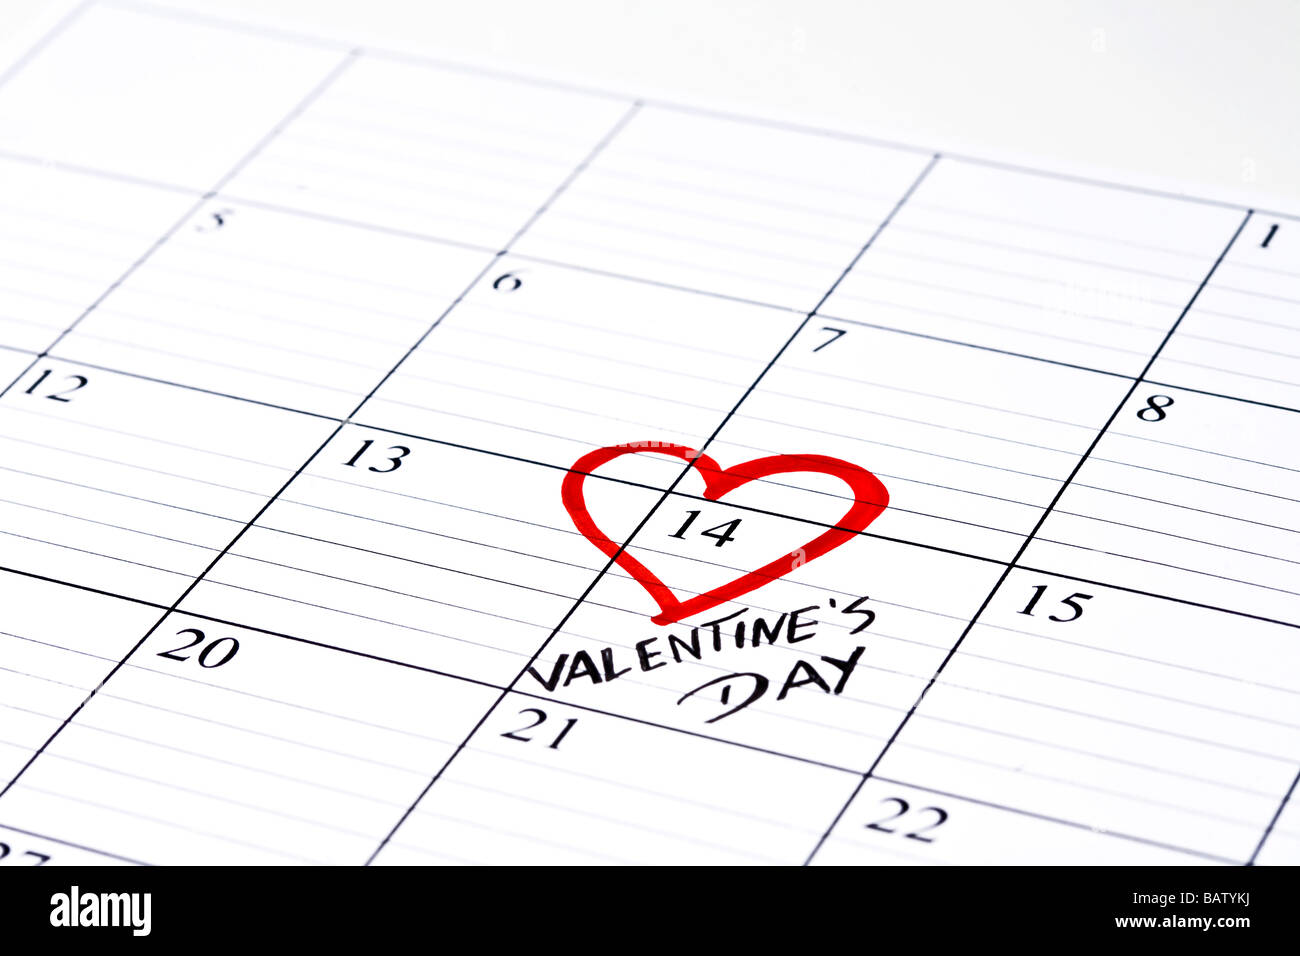 valentine´s day marked with heart in calendar - Stock Image